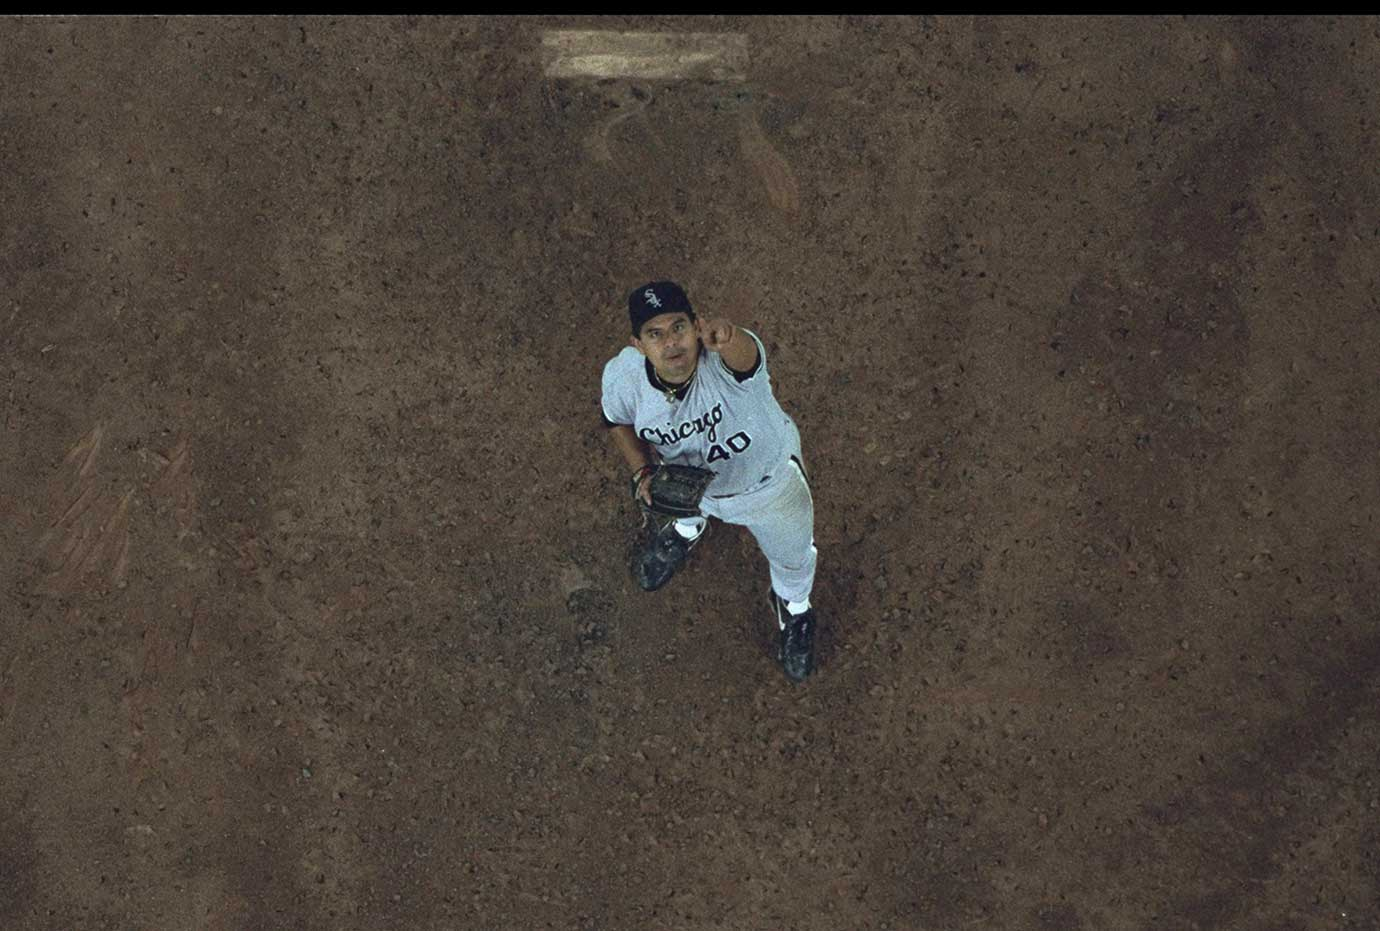 Chicago White Sox pitcher Wilson Alvarez stands under the last out pop up in a 1993 playoff game.